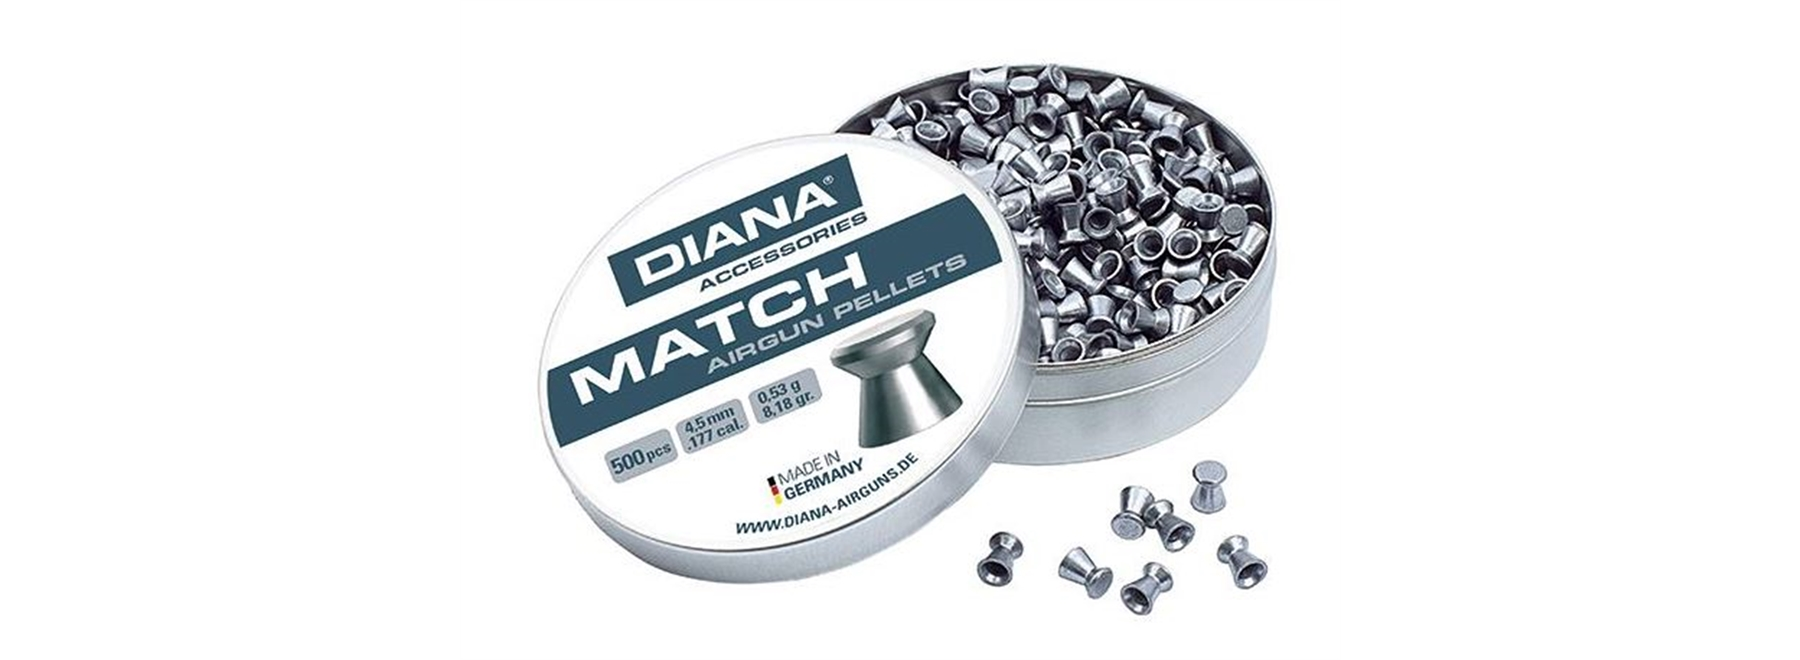 Diana Diablo Pellets Match .177 (4.5mm)